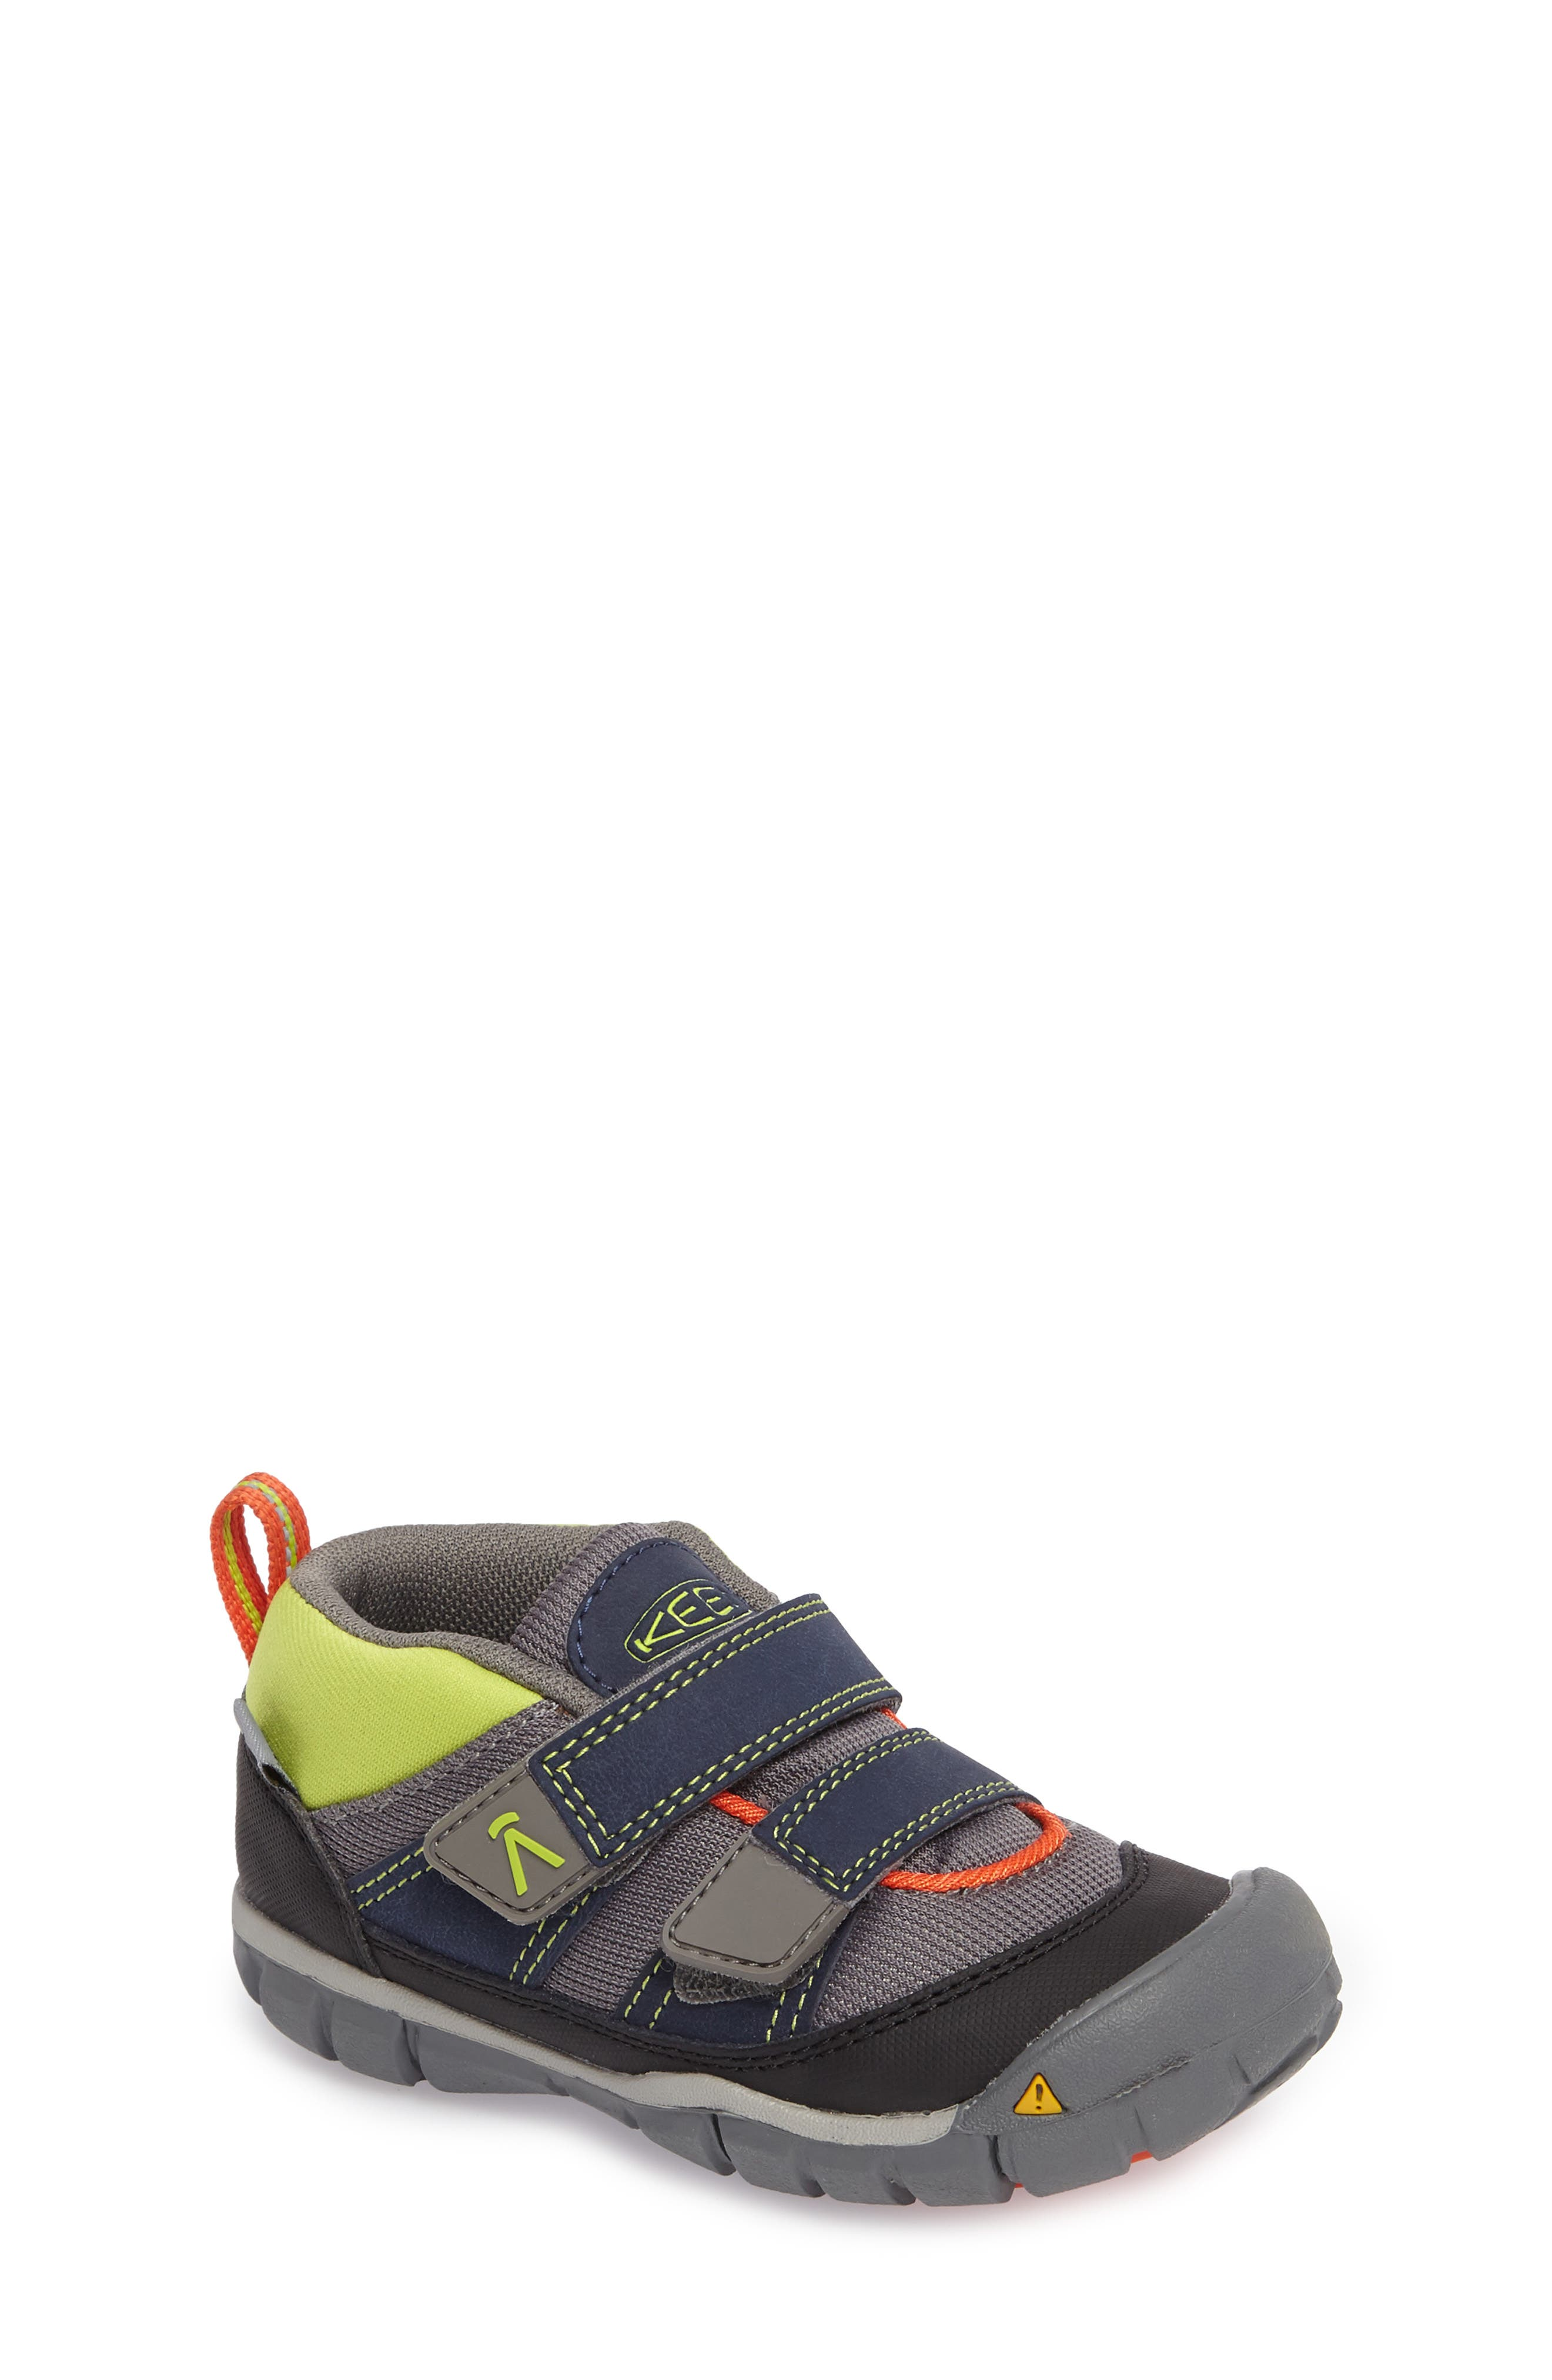 Peek-a-Shoe Sneaker,                         Main,                         color,